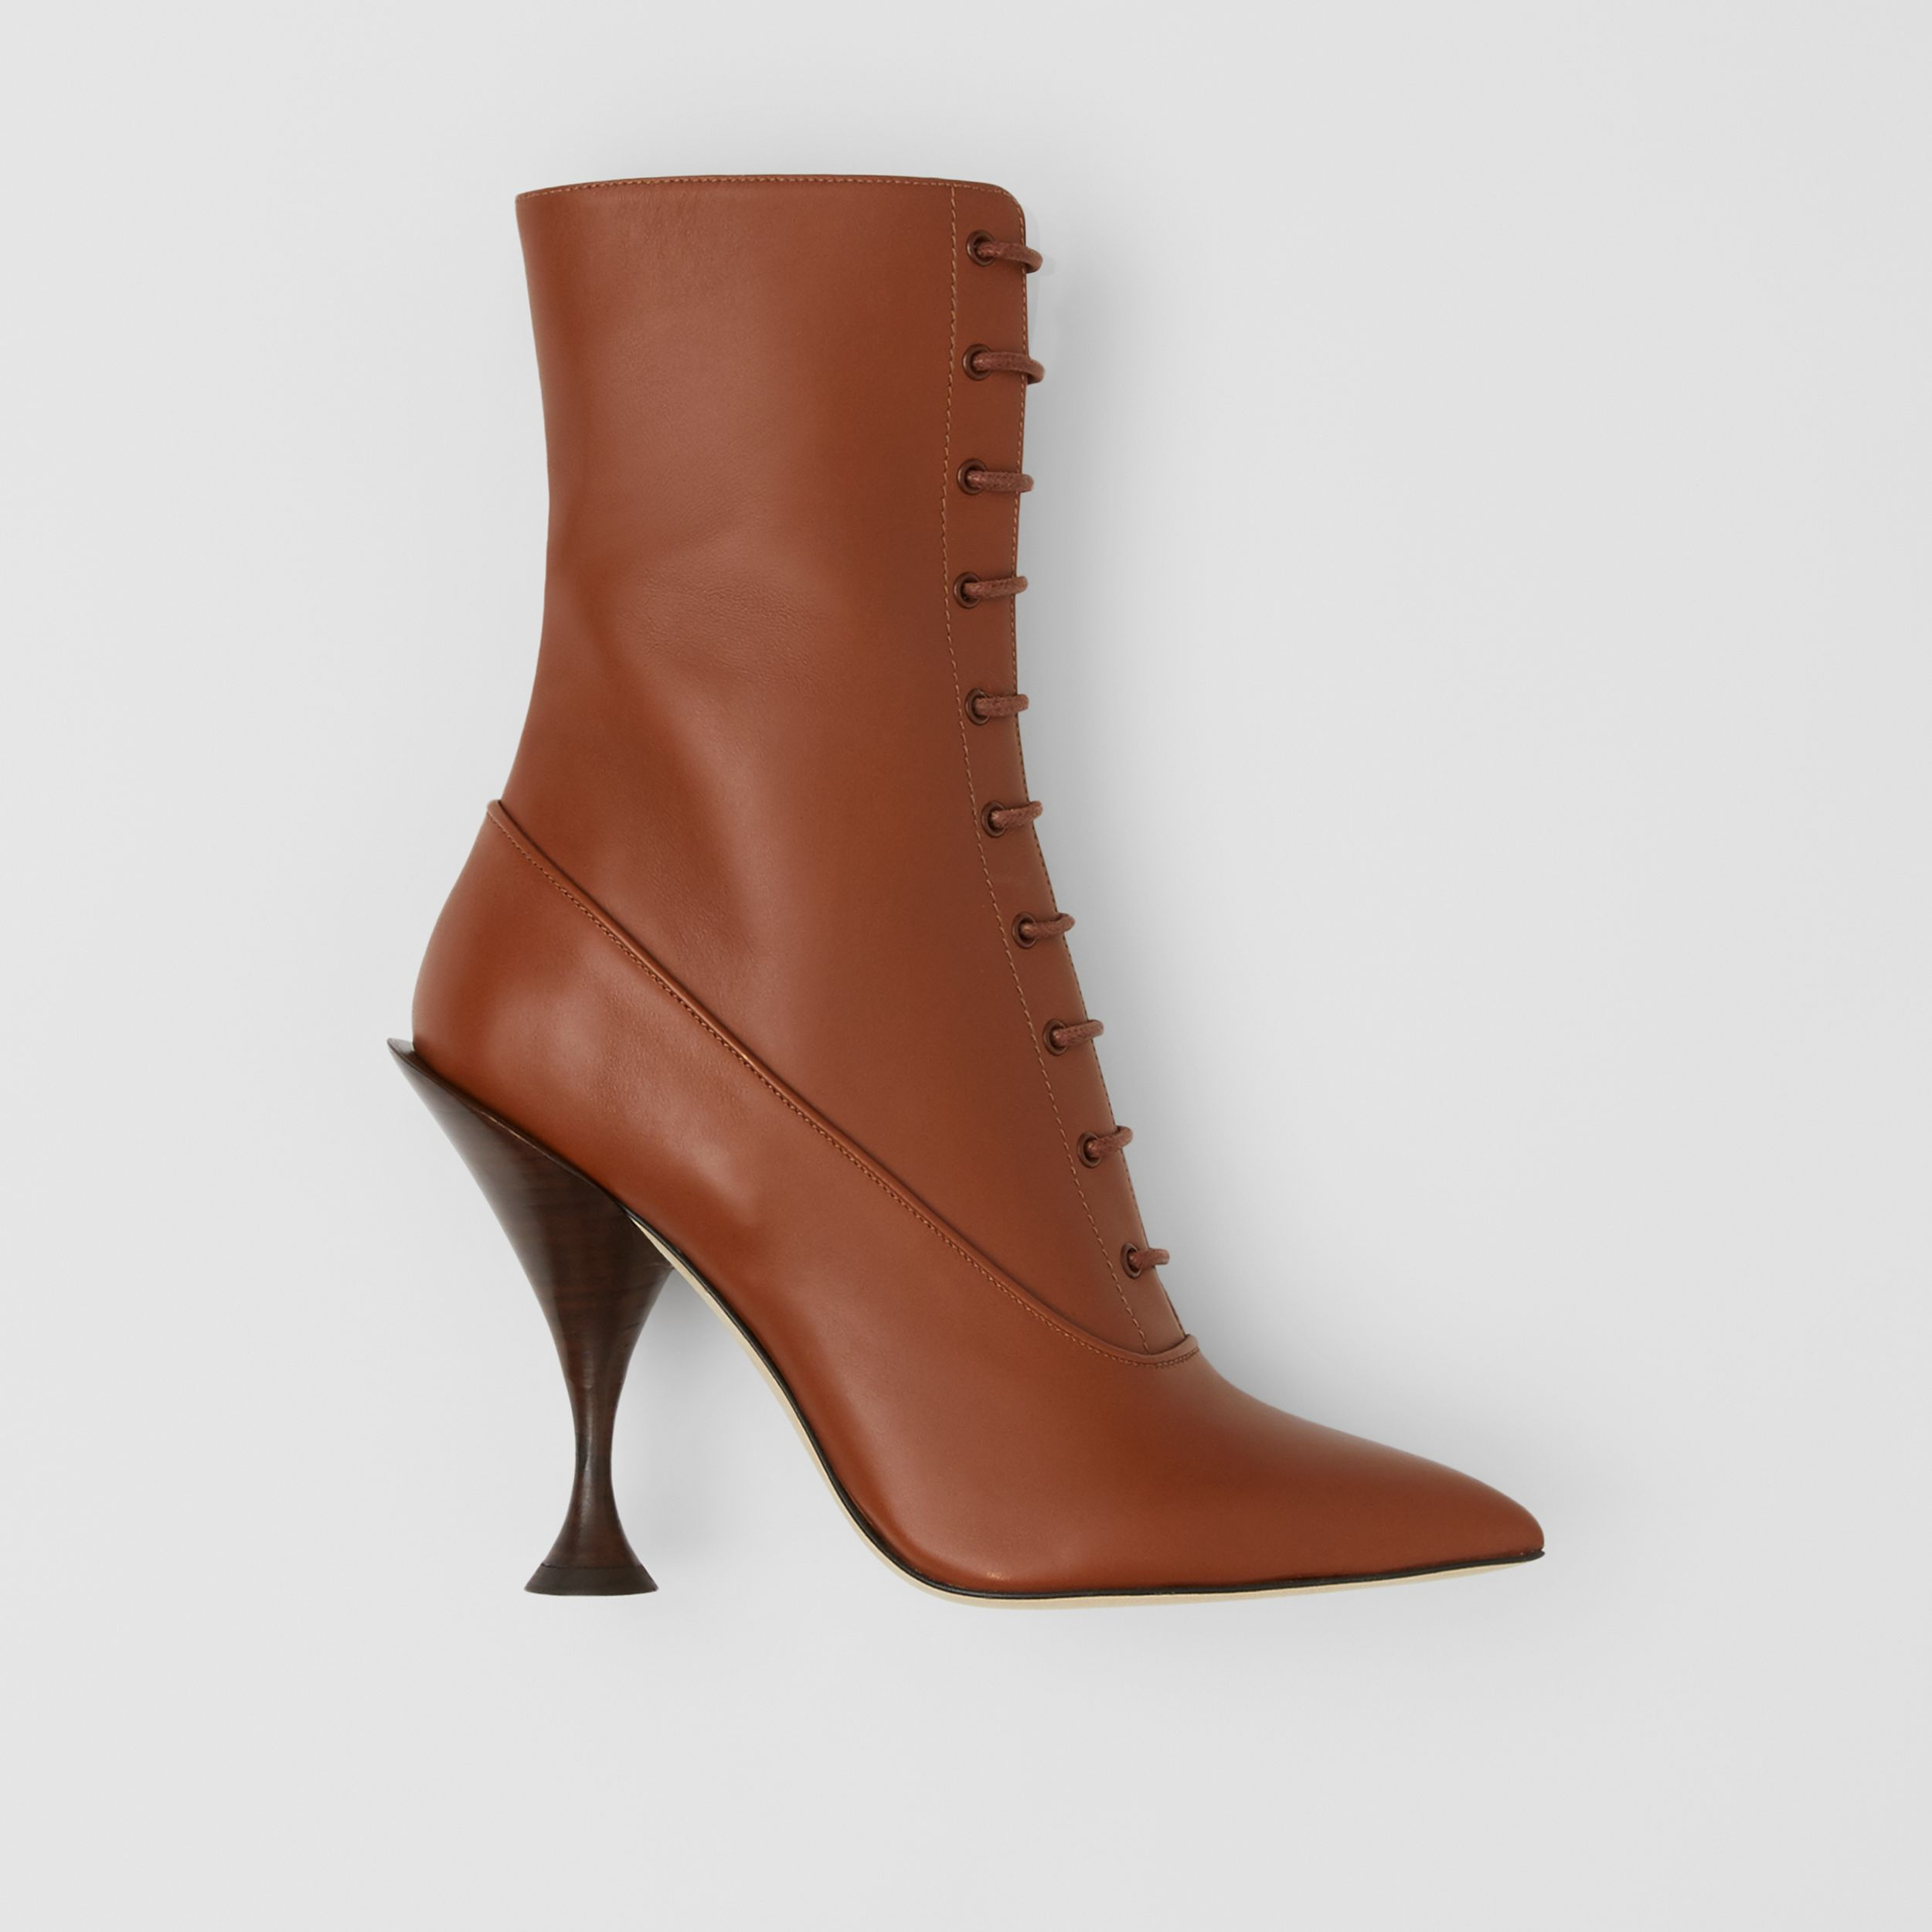 Lambskin Lace-up Ankle Boots in Tan - Women | Burberry - 1